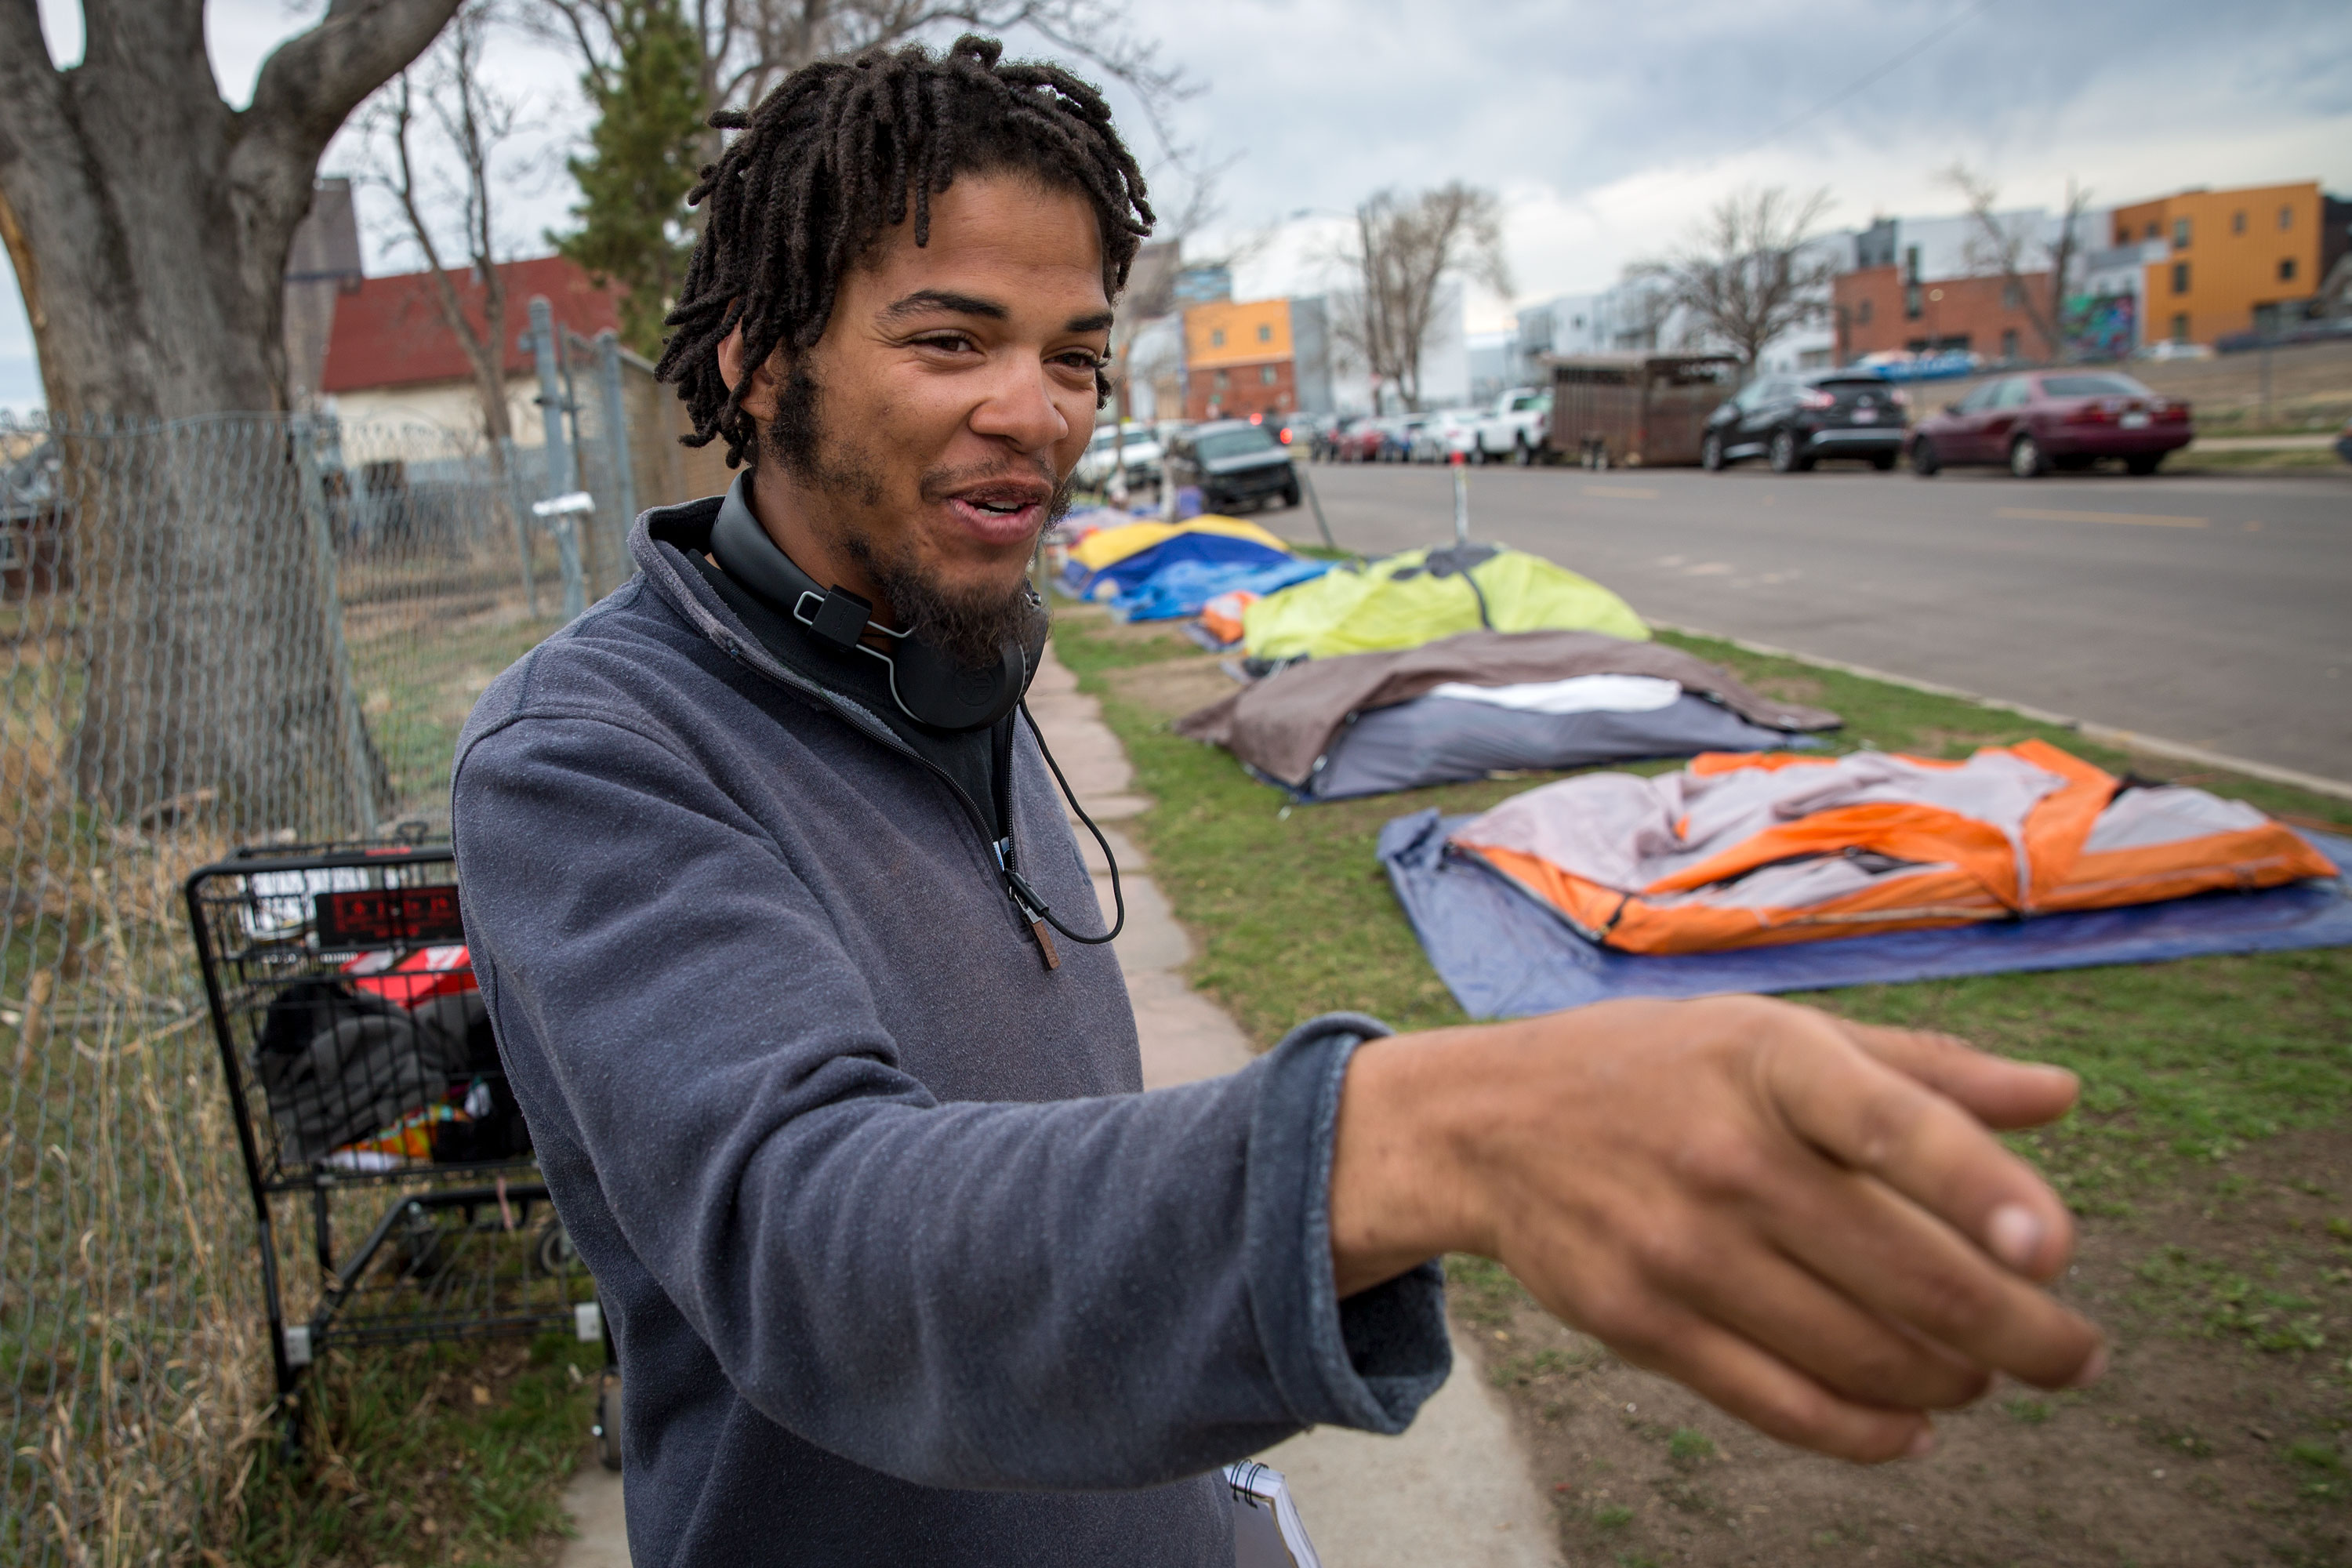 Photo: Denver Homeless Camp Arapahoe Zeno 2 20190327